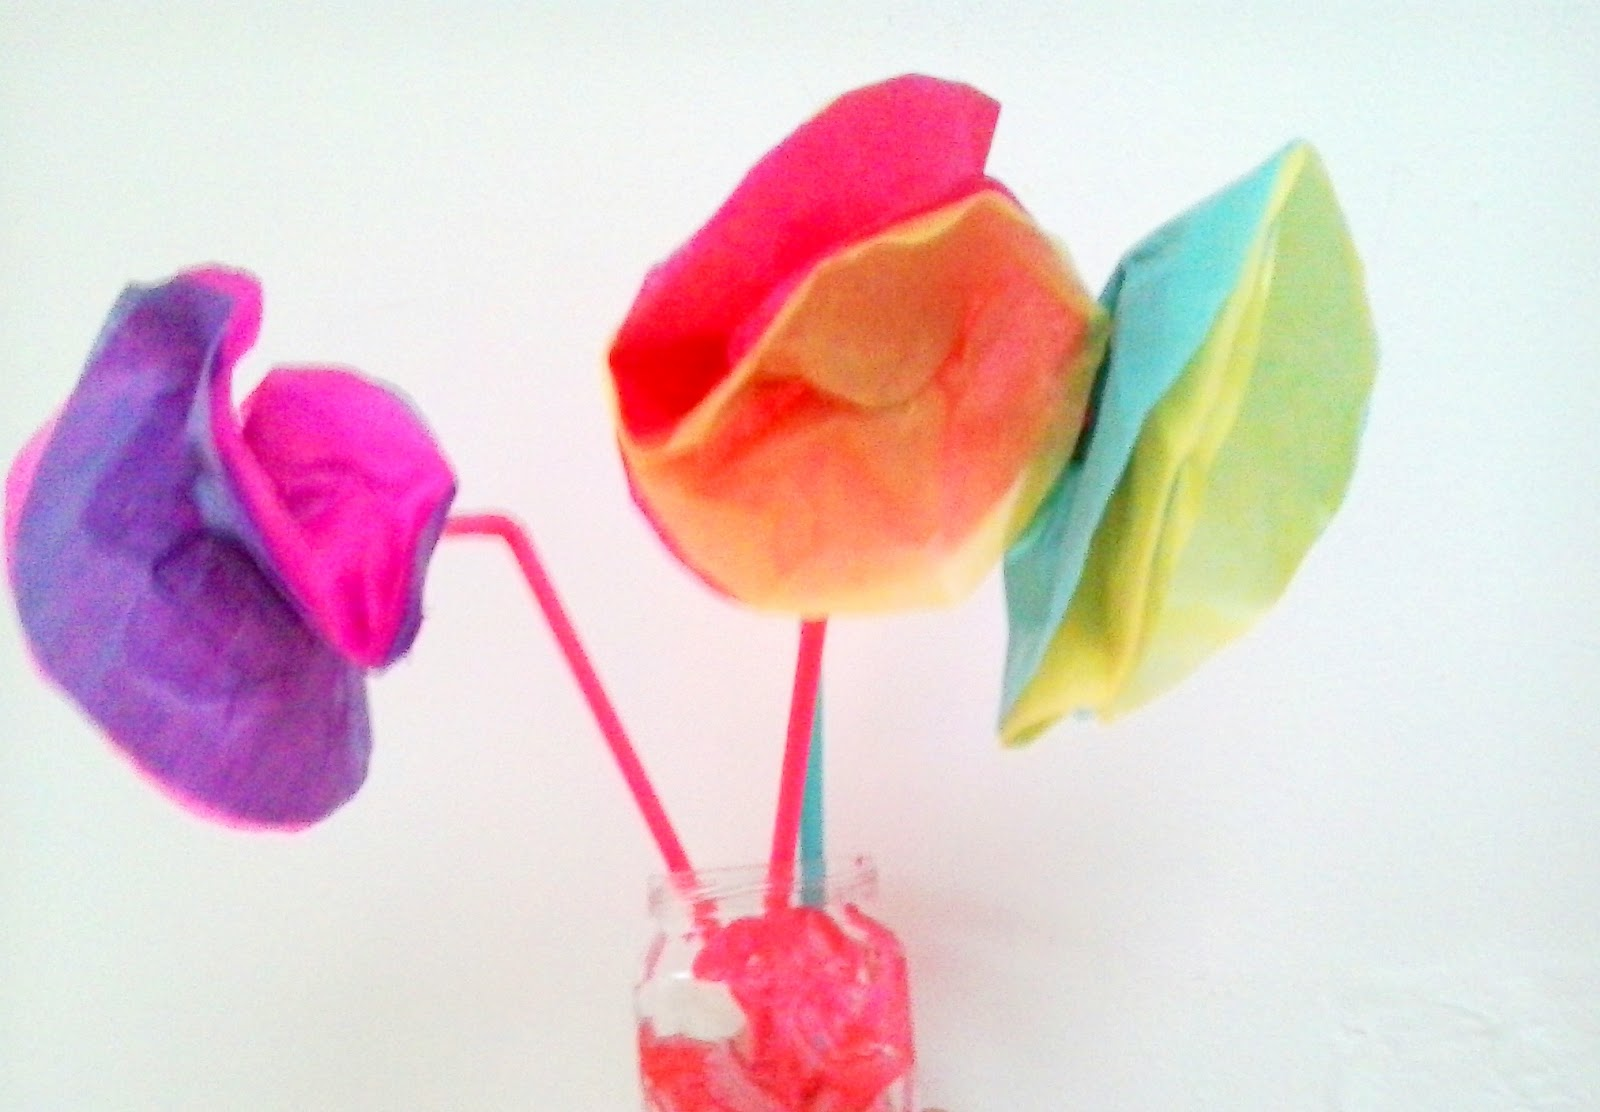 Tissue paper flowers for preschoolers gallery flower decoration ideas easy tissue paper flowers for kindergarten image collections paper flowers for preschoolers images flower decoration ideas mightylinksfo